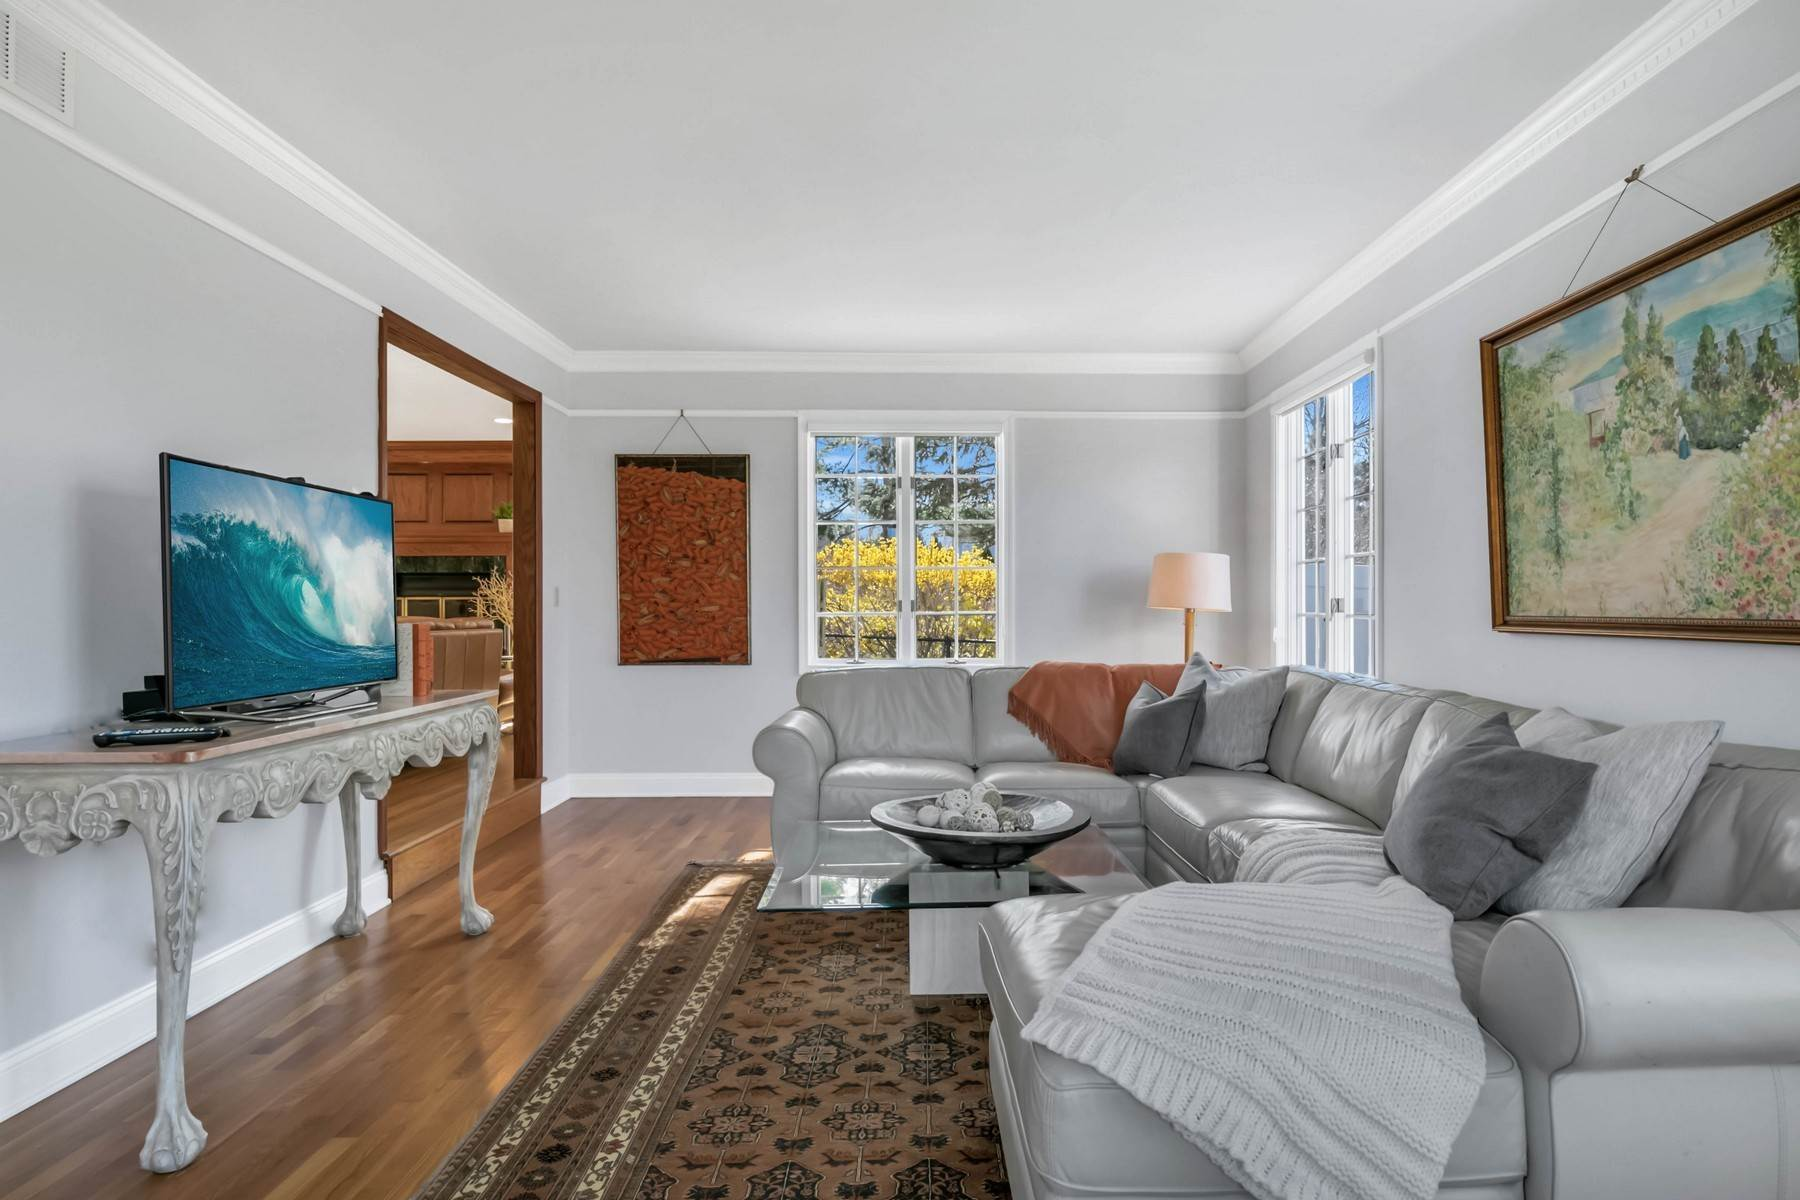 7. Single Family Homes for Sale at Elegance Meets Edgy Infused with Exceptional Quality and Custom Updates 130 Lippincott Road Little Silver, New Jersey 07739 United States